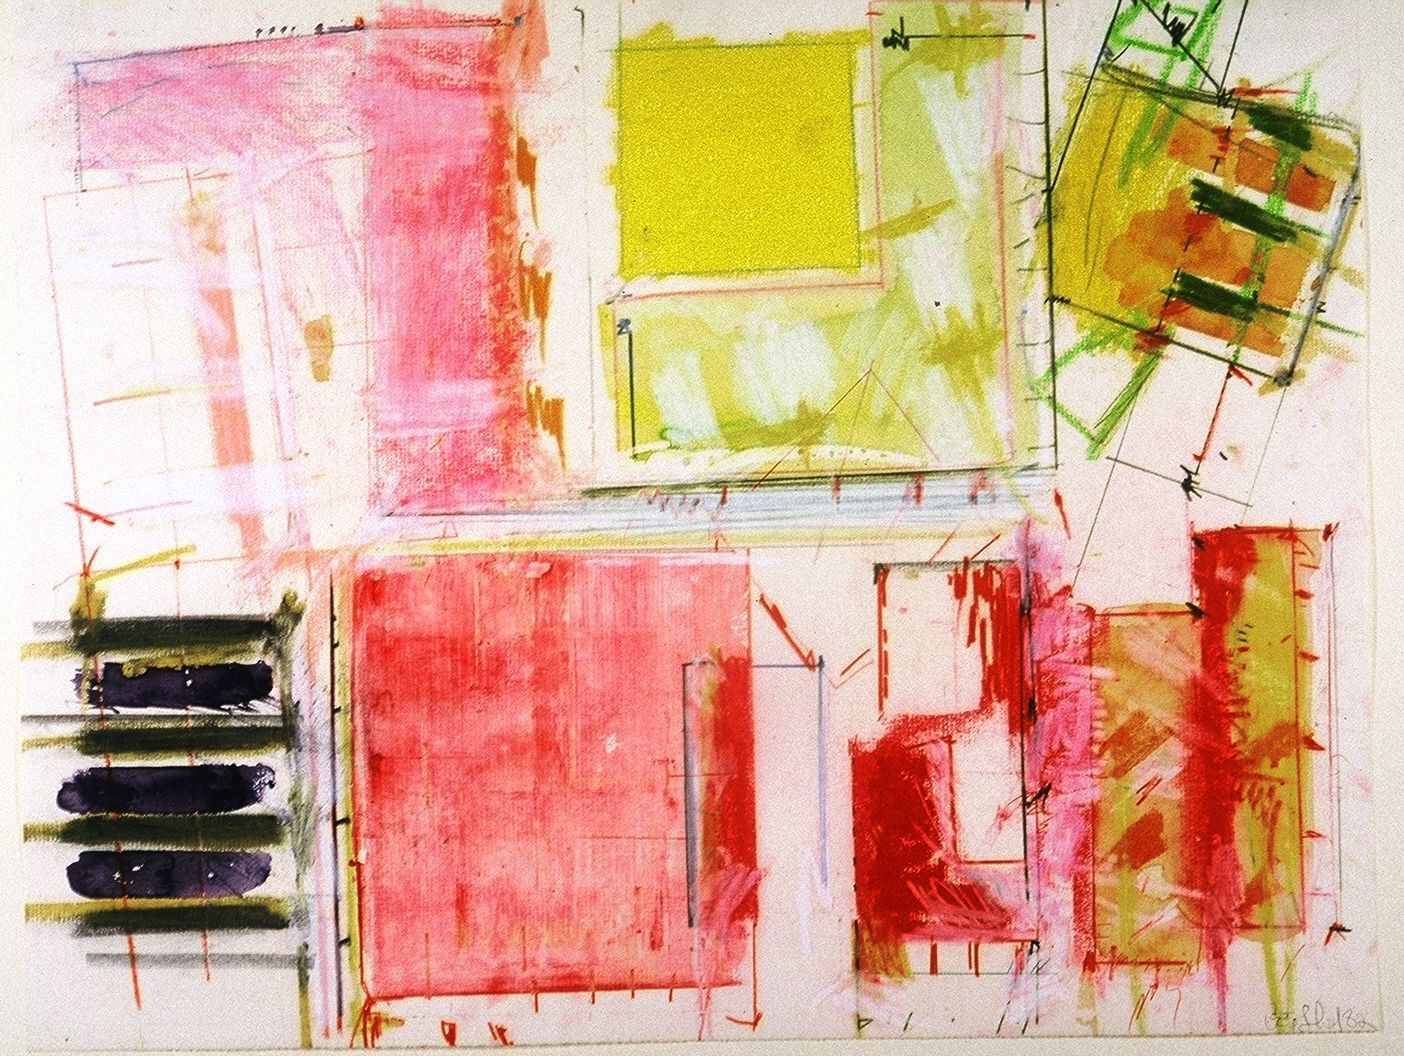 "PINK CITY    , Ithaca NY      1982 15 x 19"" ,    watercolor  etc on laid paper"